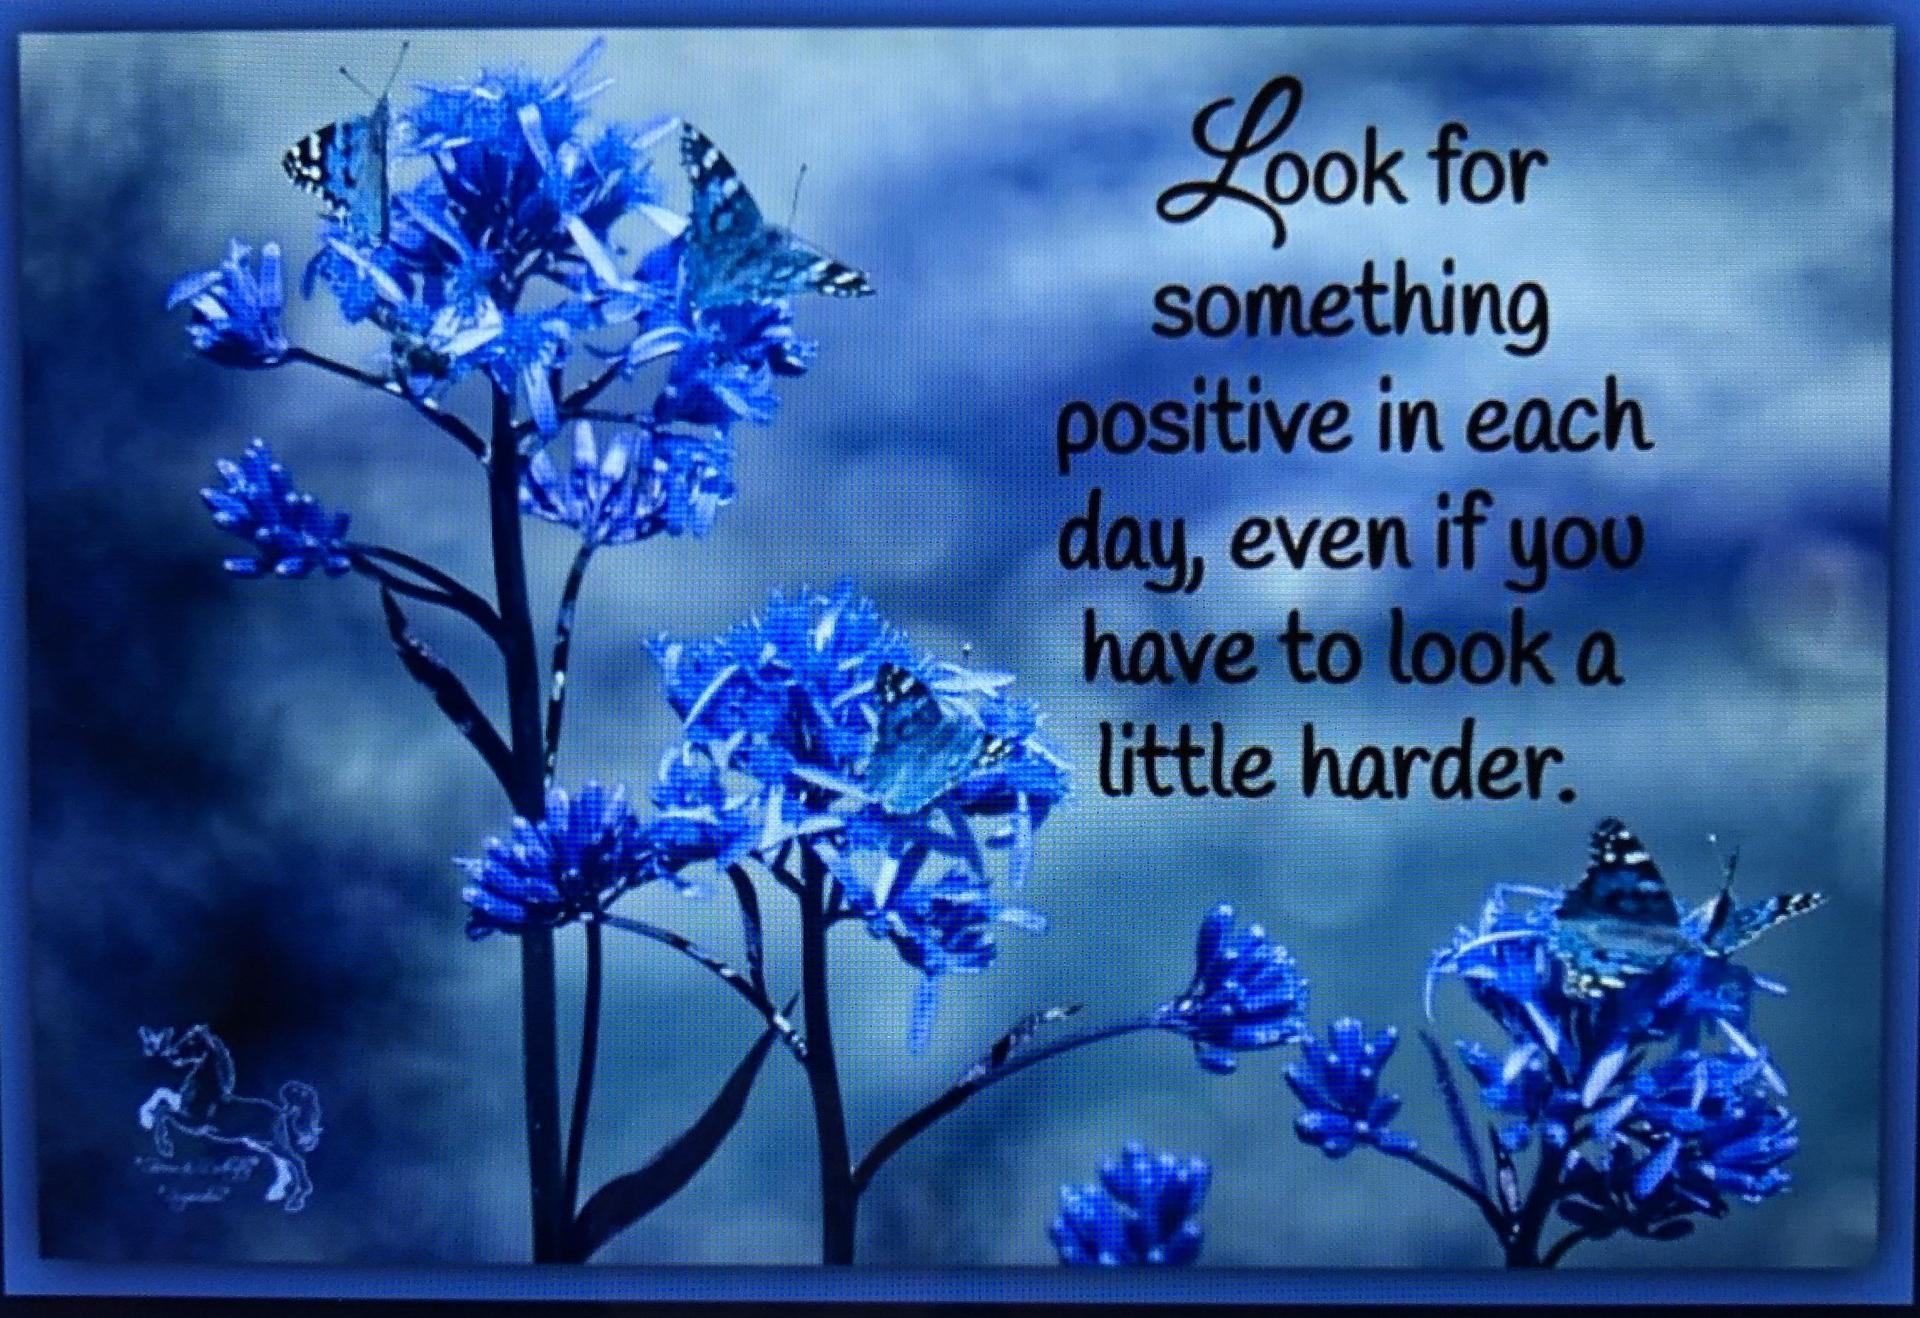 Look for something positive in each day, even if you have to look a little harder.